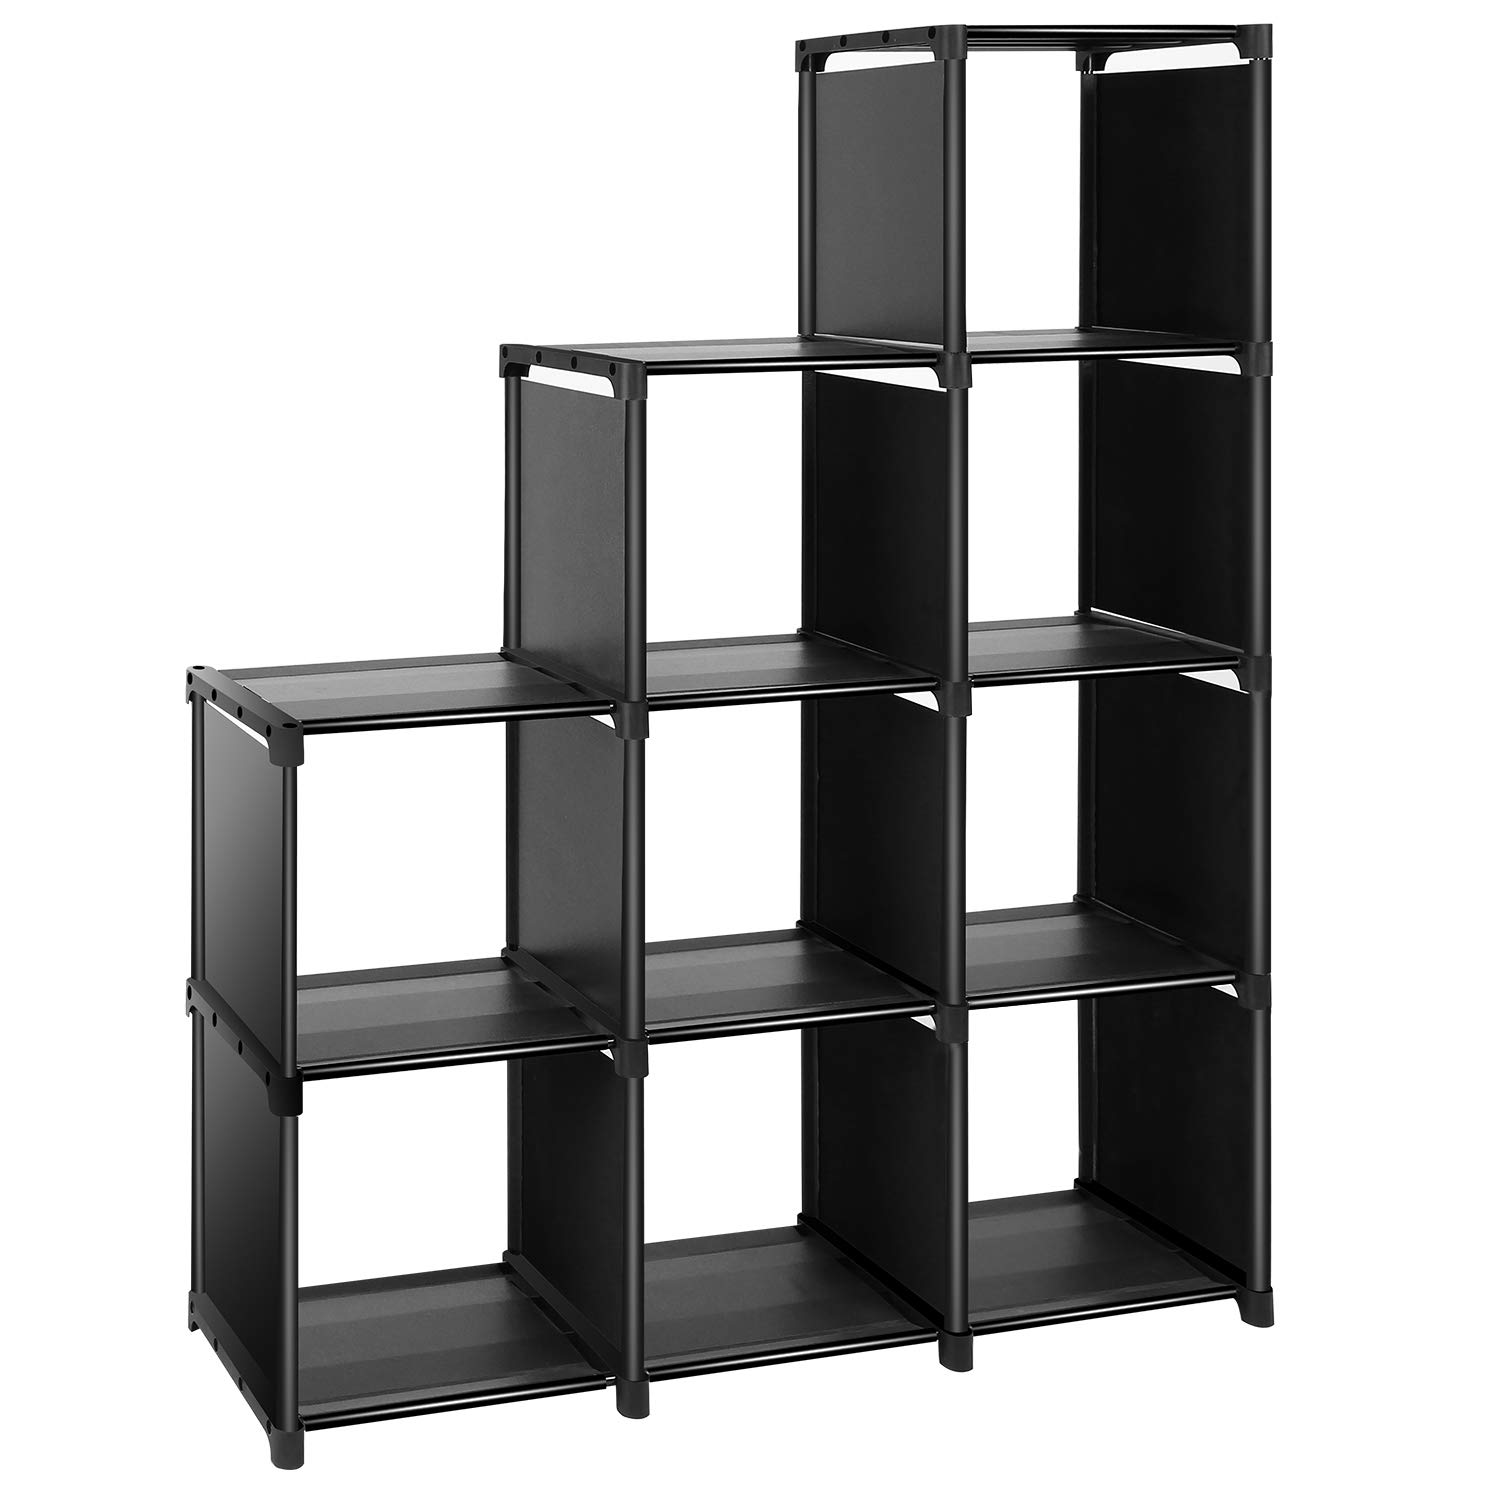 TomCare Cube Storage 9-Cube Closet Organizer Cube Organizer Storage Shelves Bookcase Bookshelf Clothes Cabinets Storage Cubes Bins Cubbies Shelving for Bedroom Living Room Office, Black by TomCare